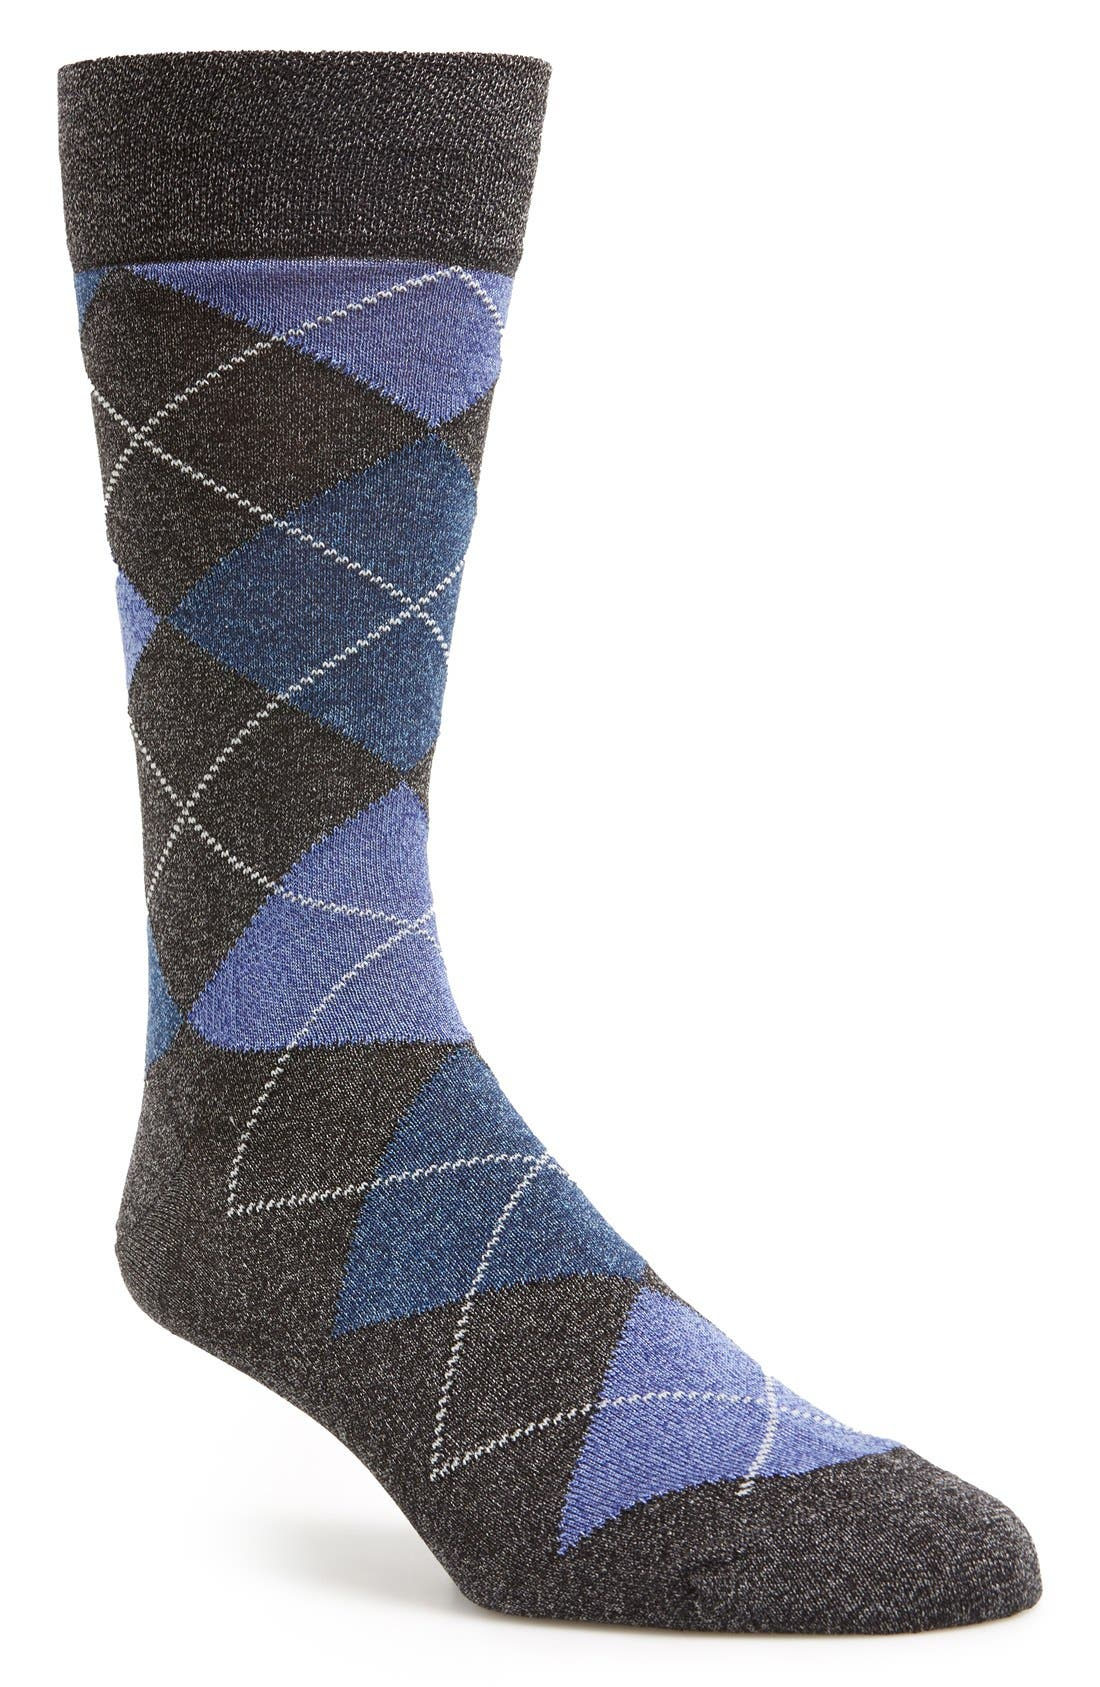 Alternate Image 1 Selected - Marcoliani Argyle Socks